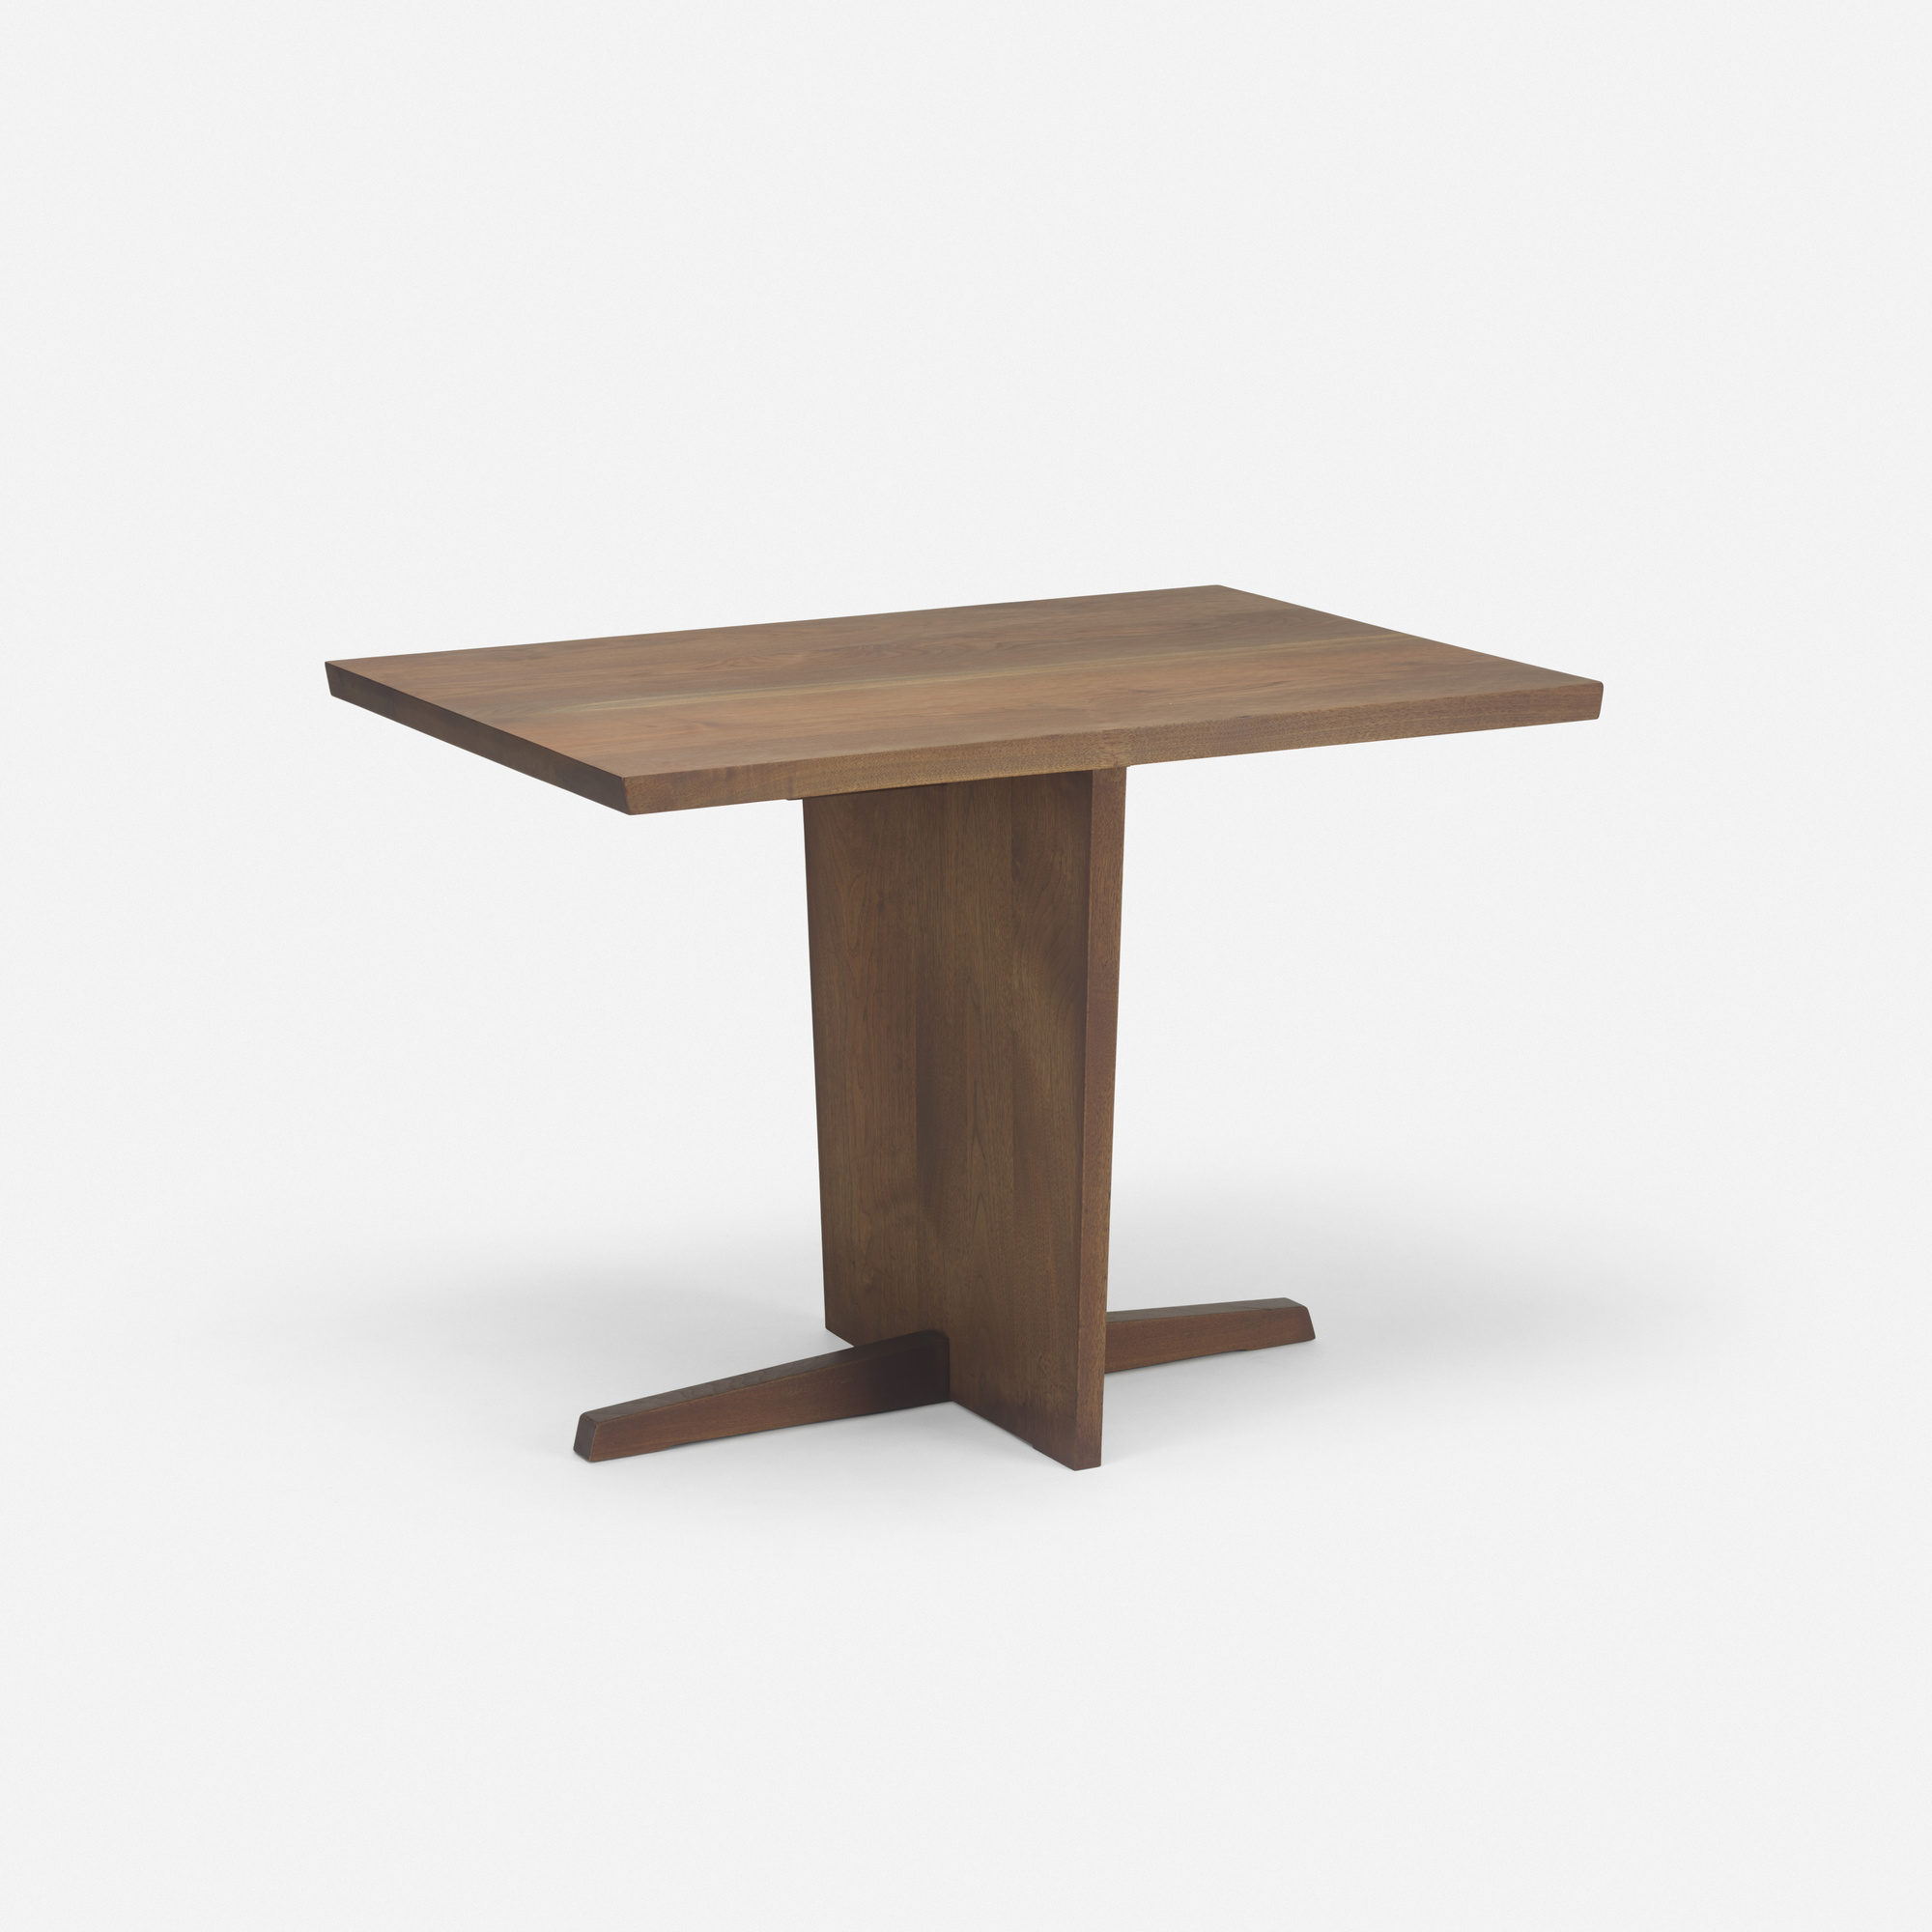 143 george nakashima minguren i table for Table design 2016